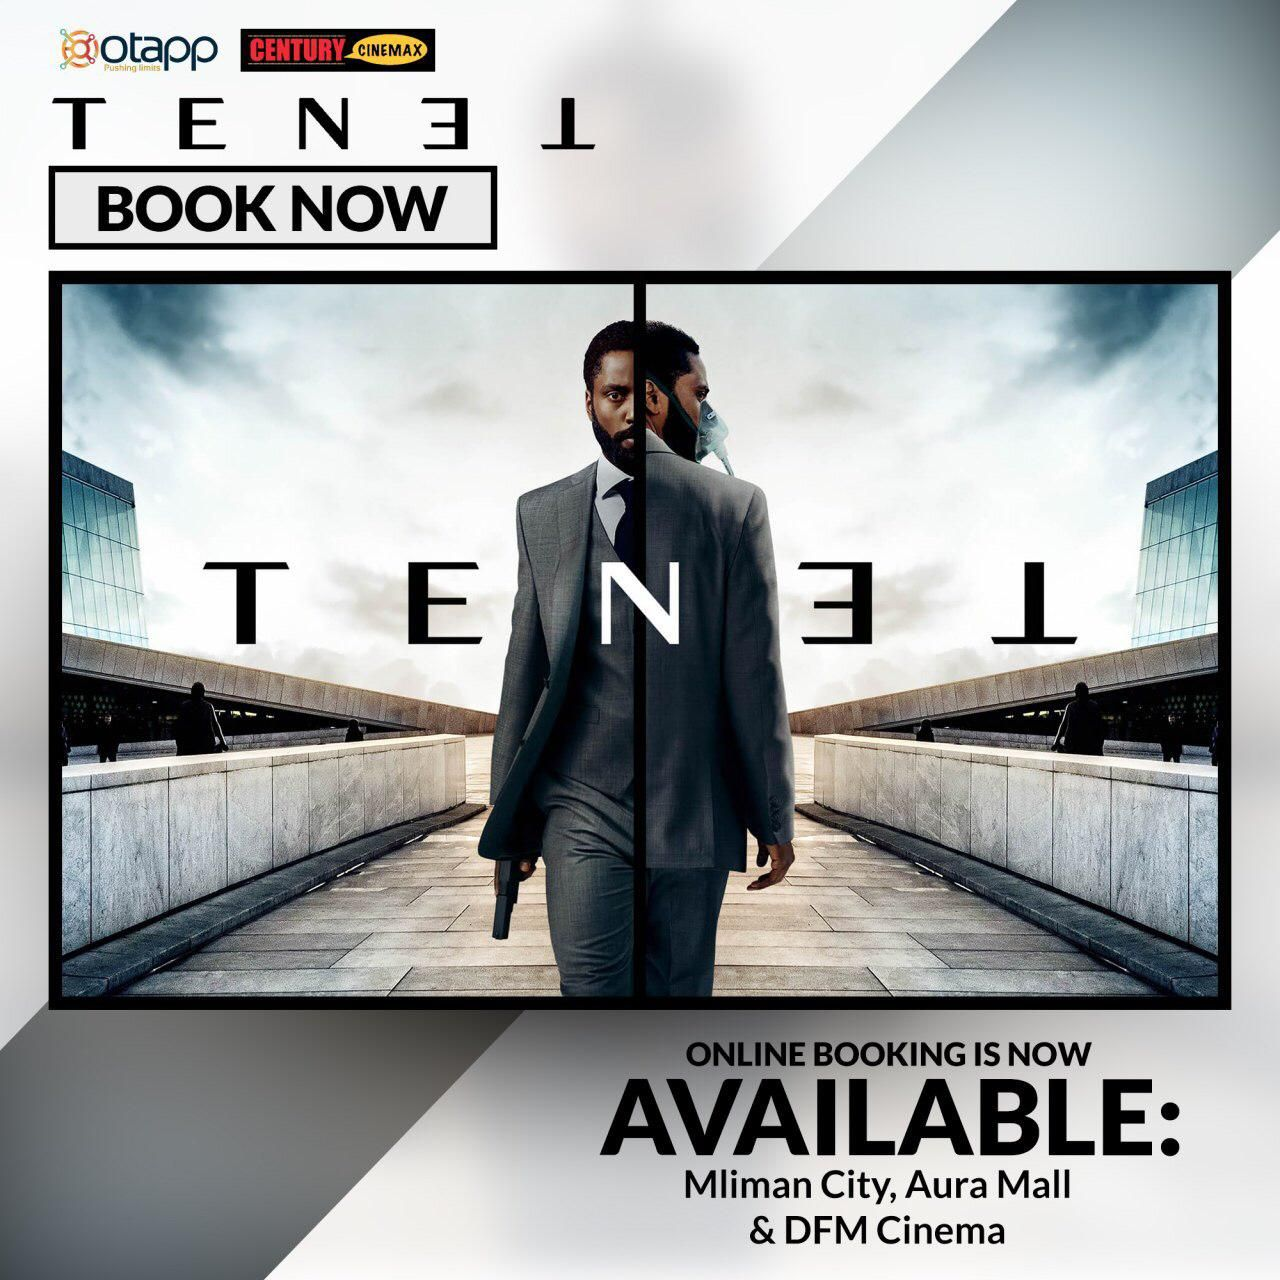 Tenet 2020 With English Subtitles Ready For Download Tenet 2020 720p 1080p Brrip Dvdrip Movie Tickets Movies Online Movies